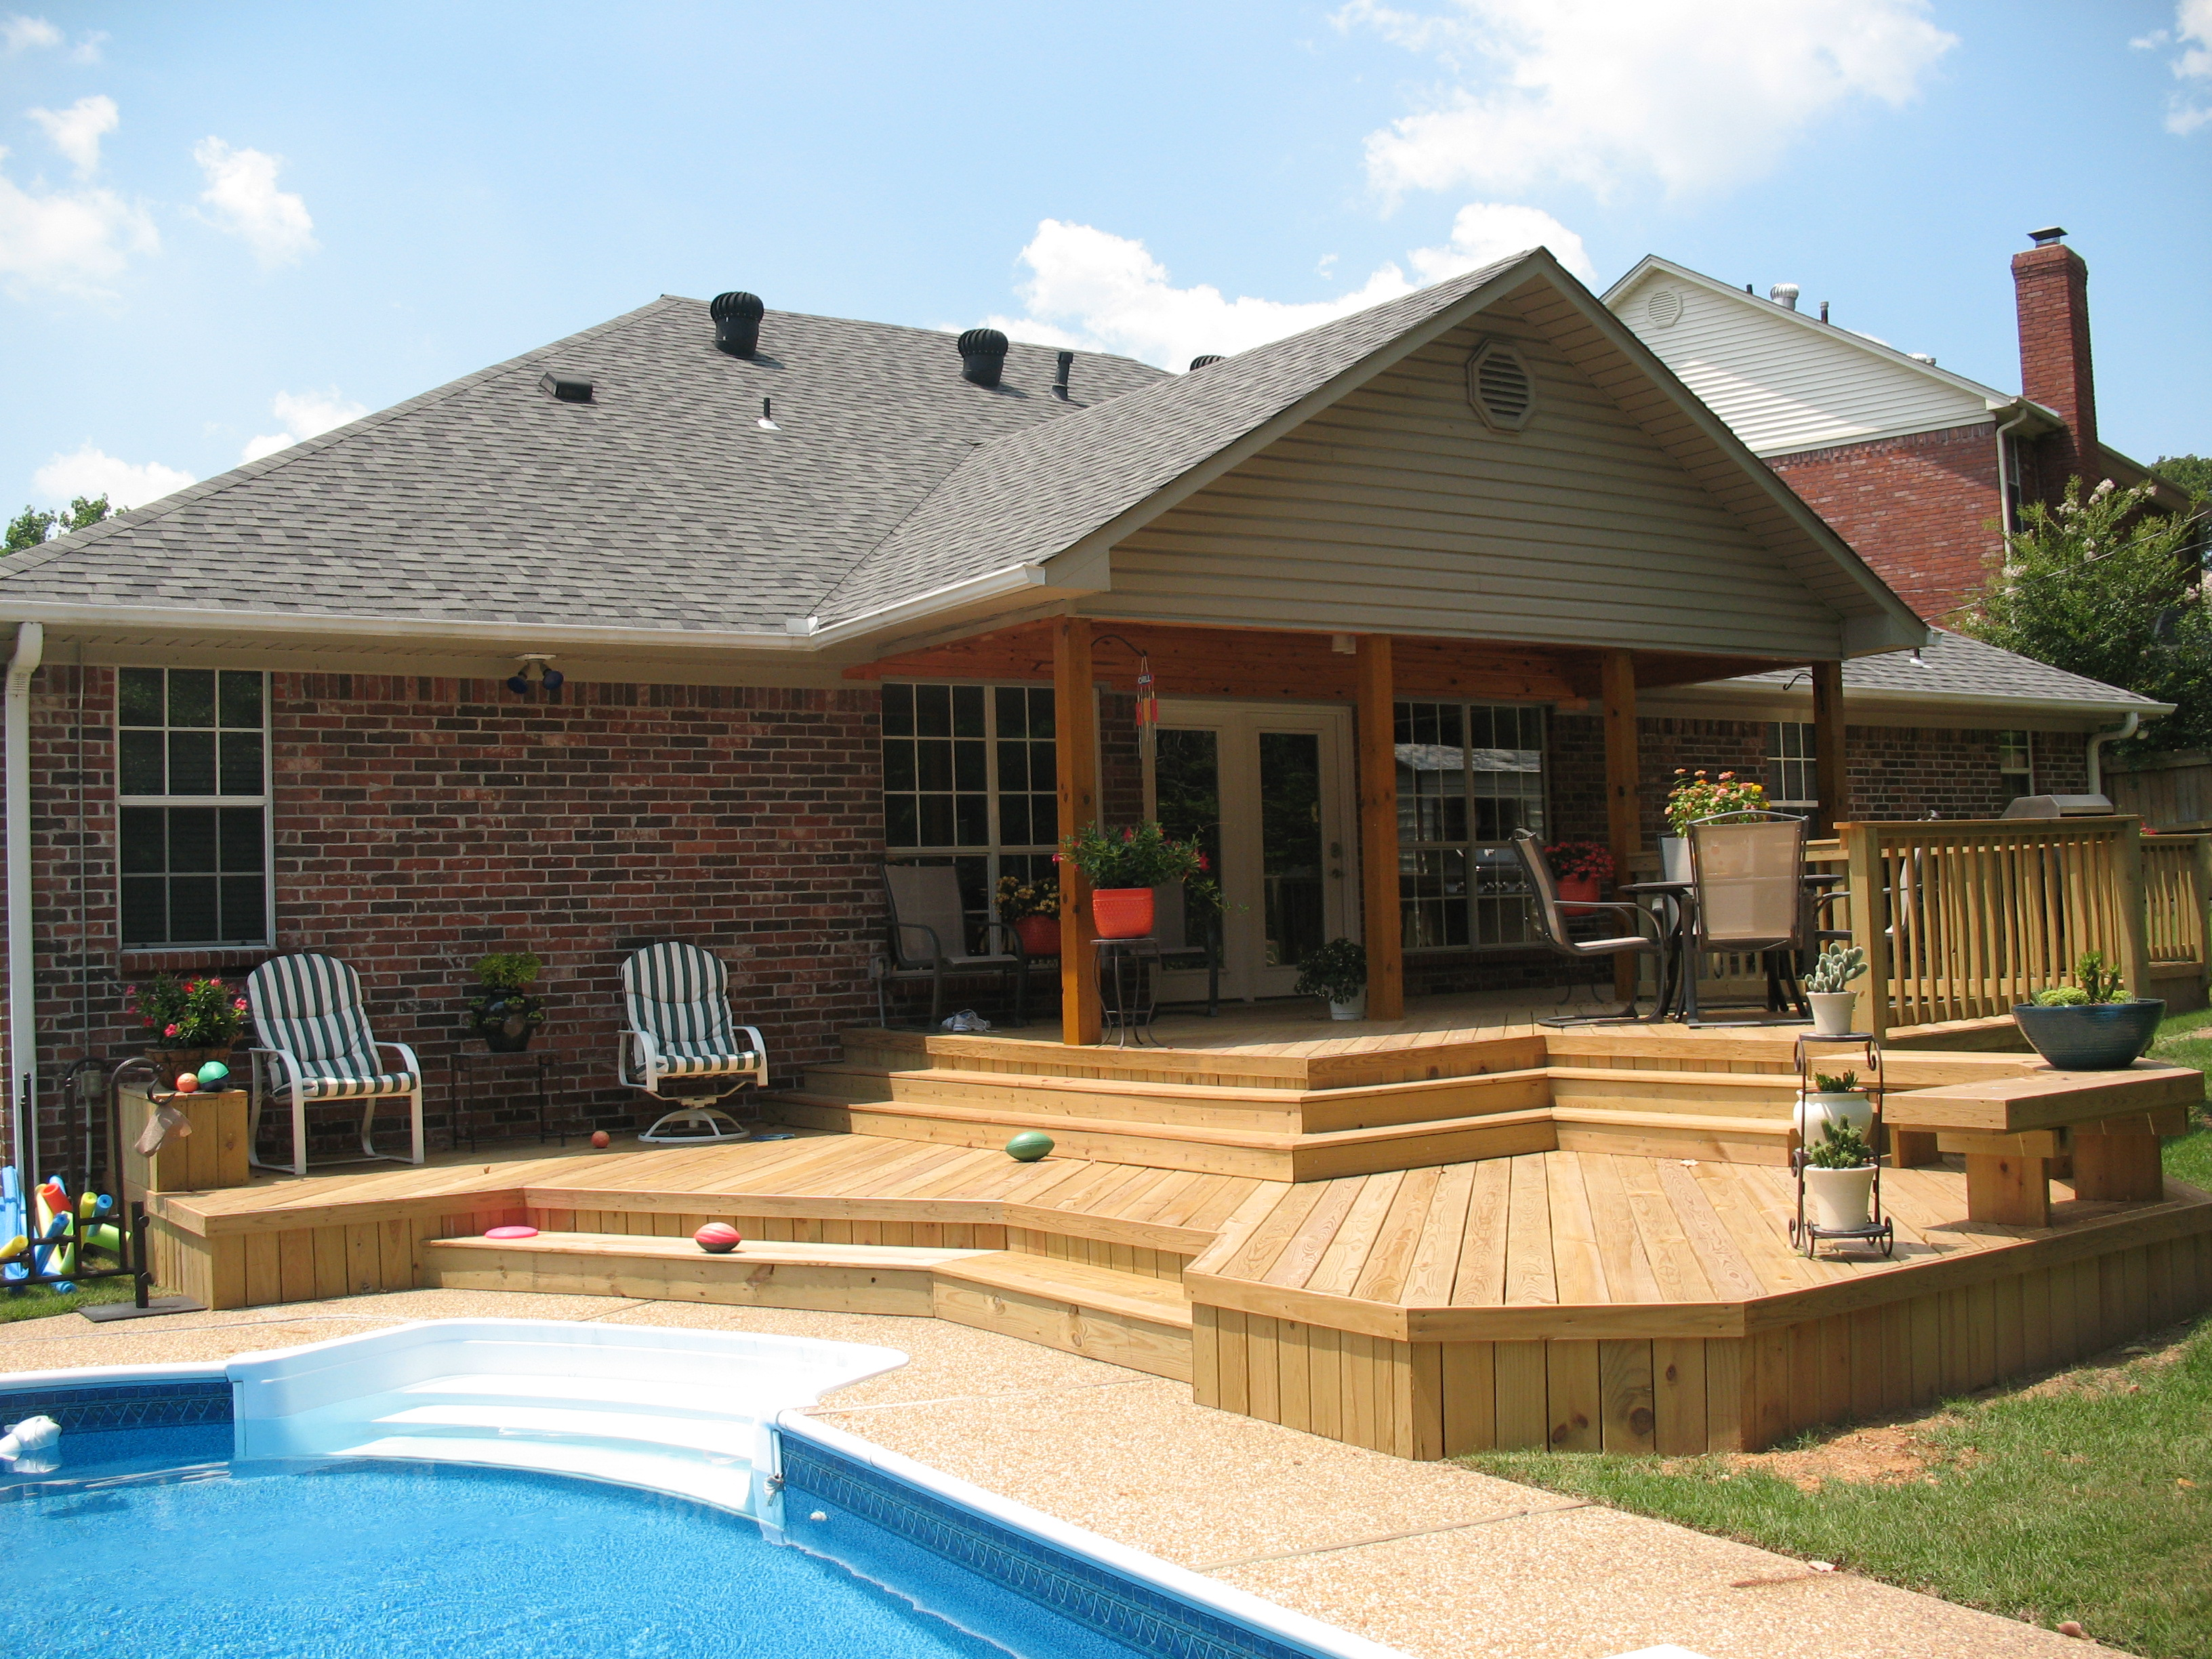 St louis mo back to basics with wood decks by archadeck for Back patio porch designs